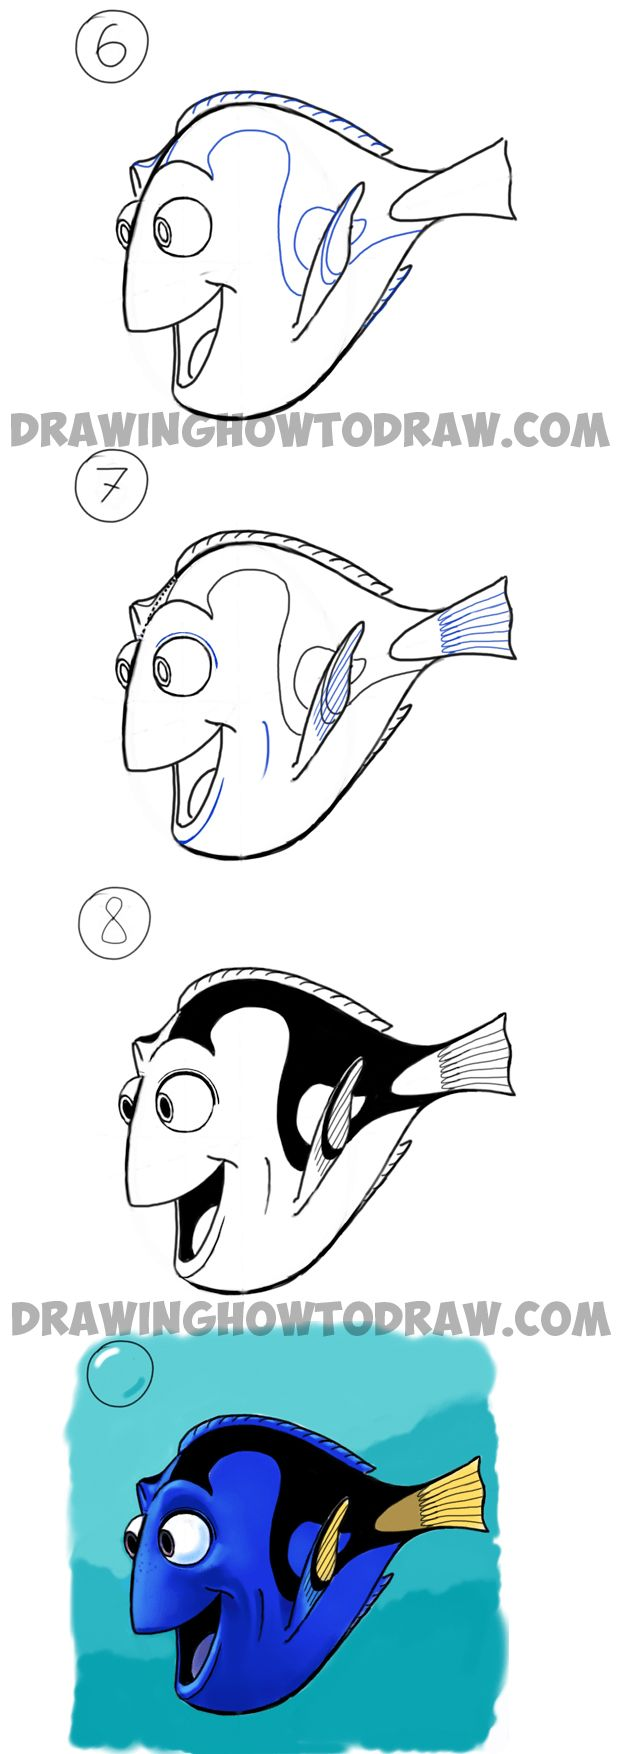 How to Draw Dory from Pixars Finding Nemo in Easy Steps Drawing Tutorial